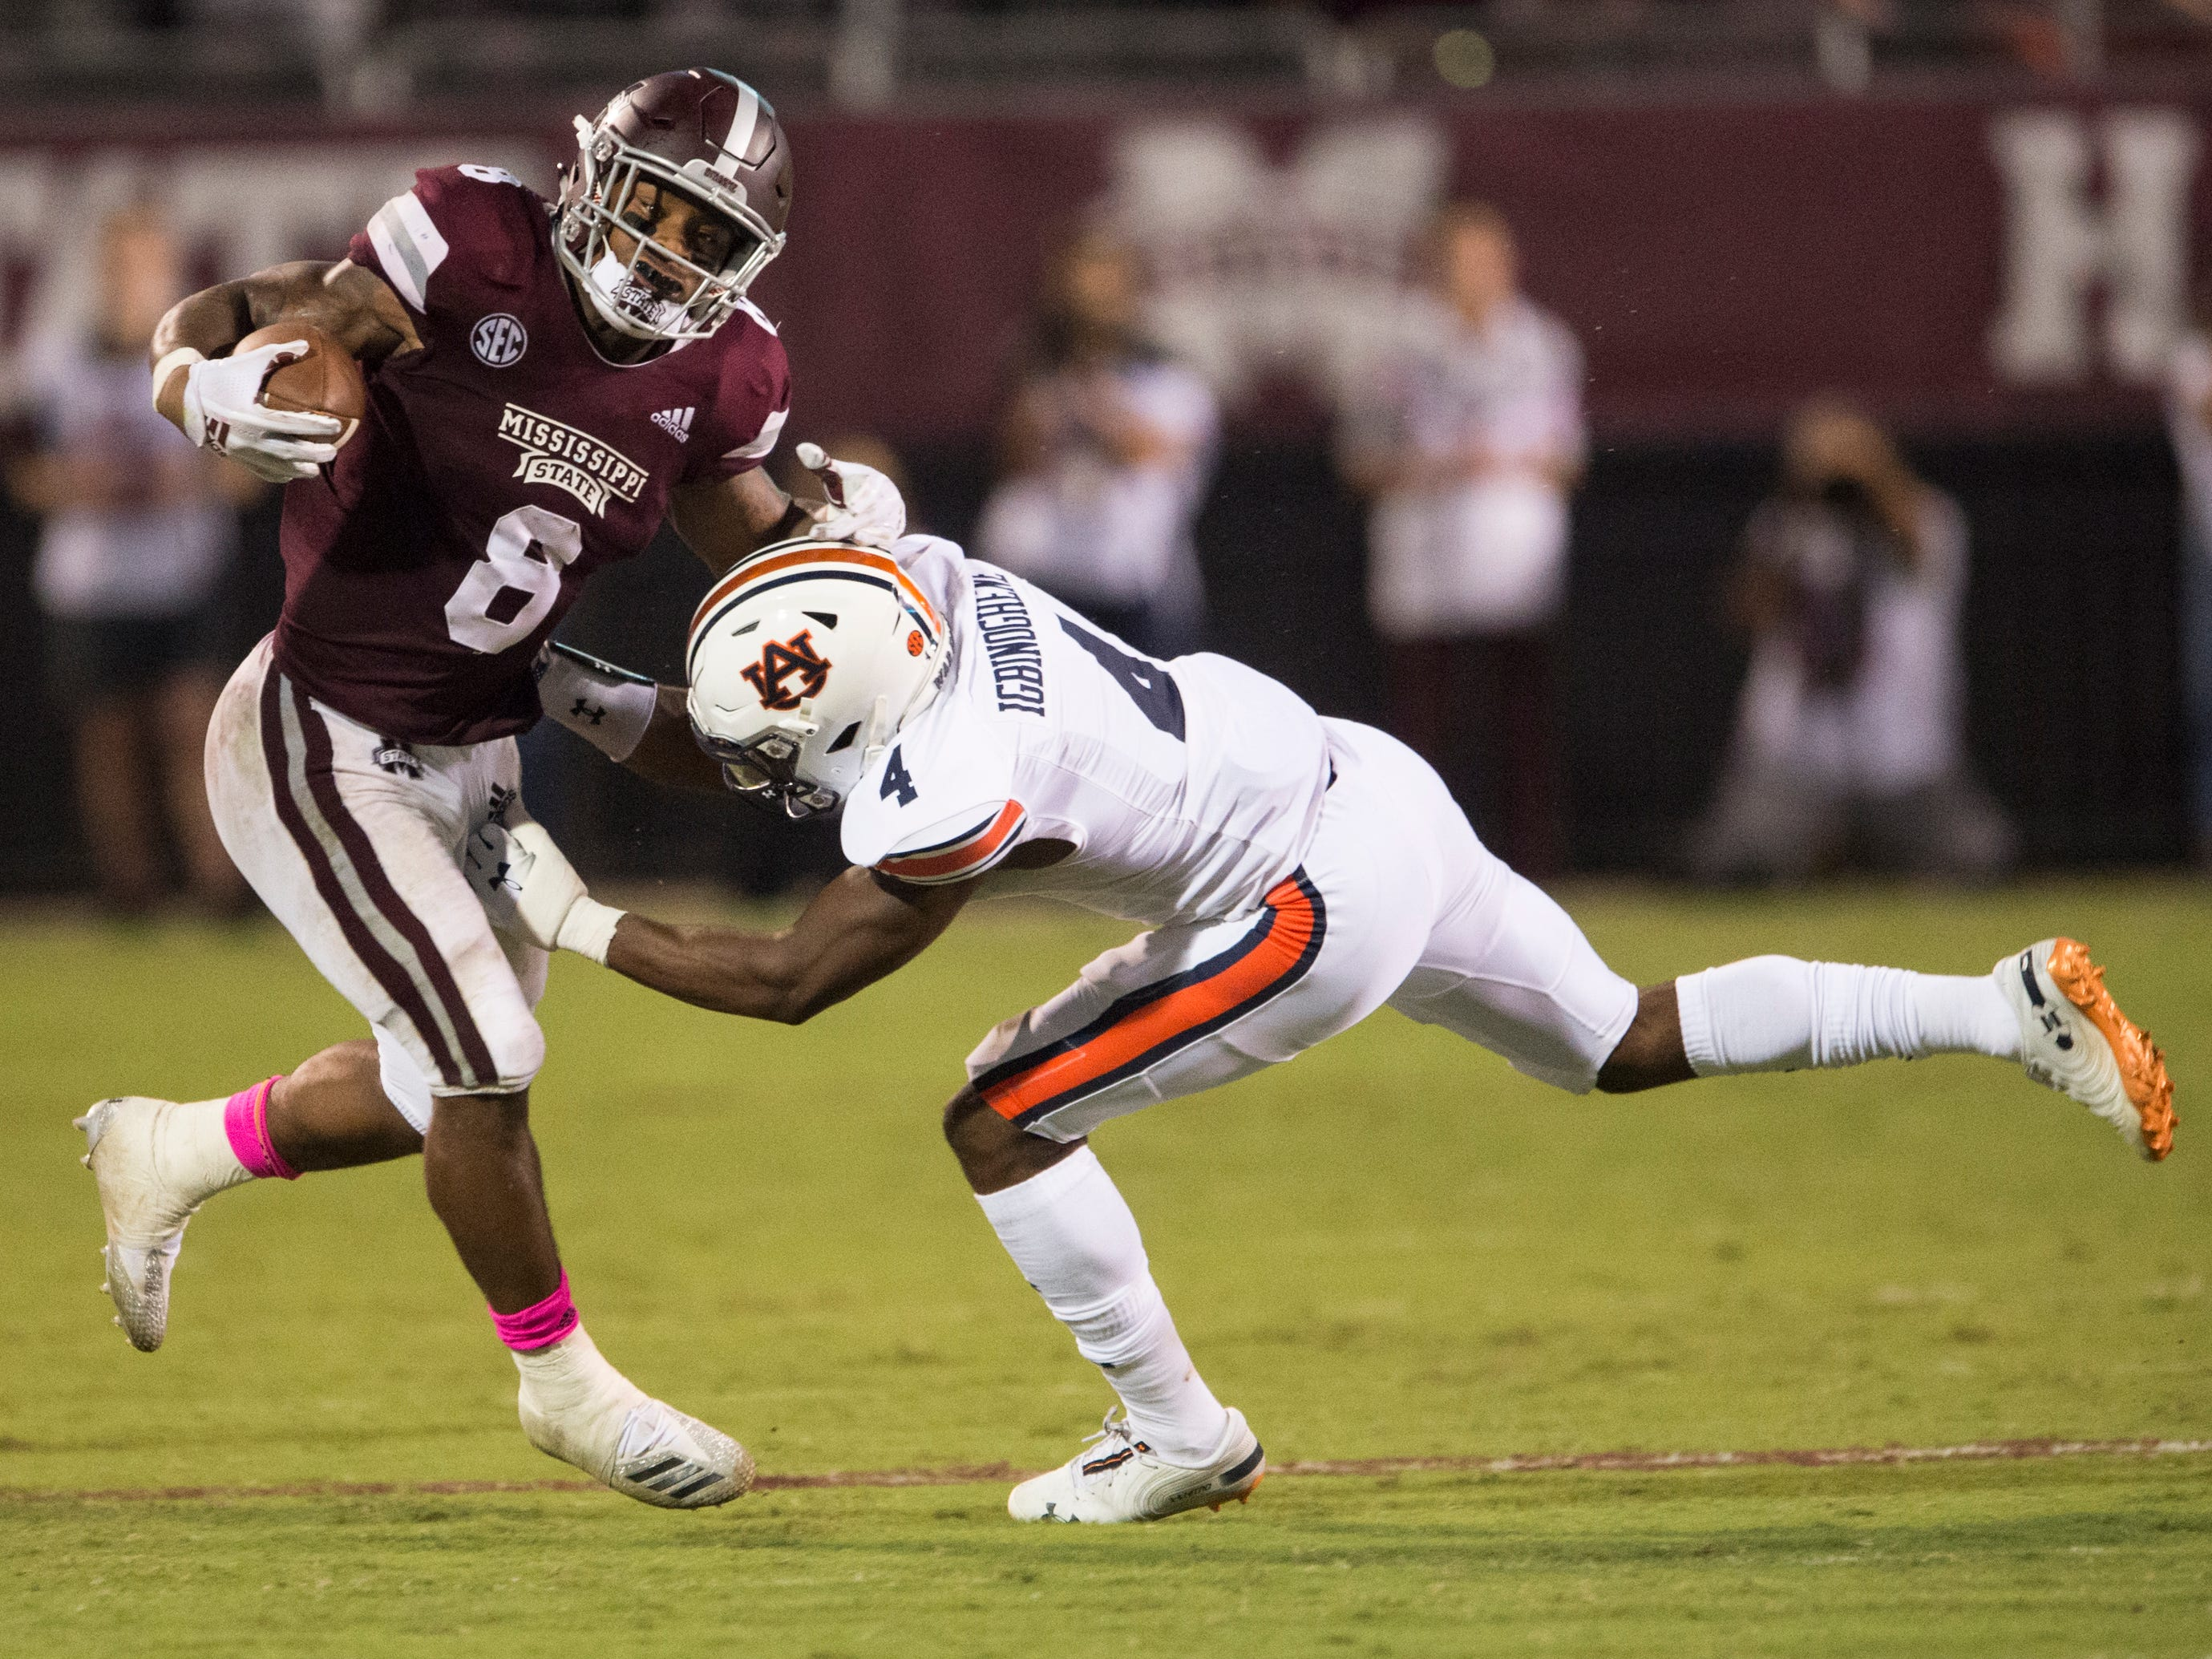 Mississippi State's Kylin Hill (8) is pushed out of bounds by Auburn's Noah Igbinoghene (4) at Davis Wade Stadium in Starkville, Miss., on Saturday, Oct. 6, 2018. Mississippi State defeated Auburn 23-9.